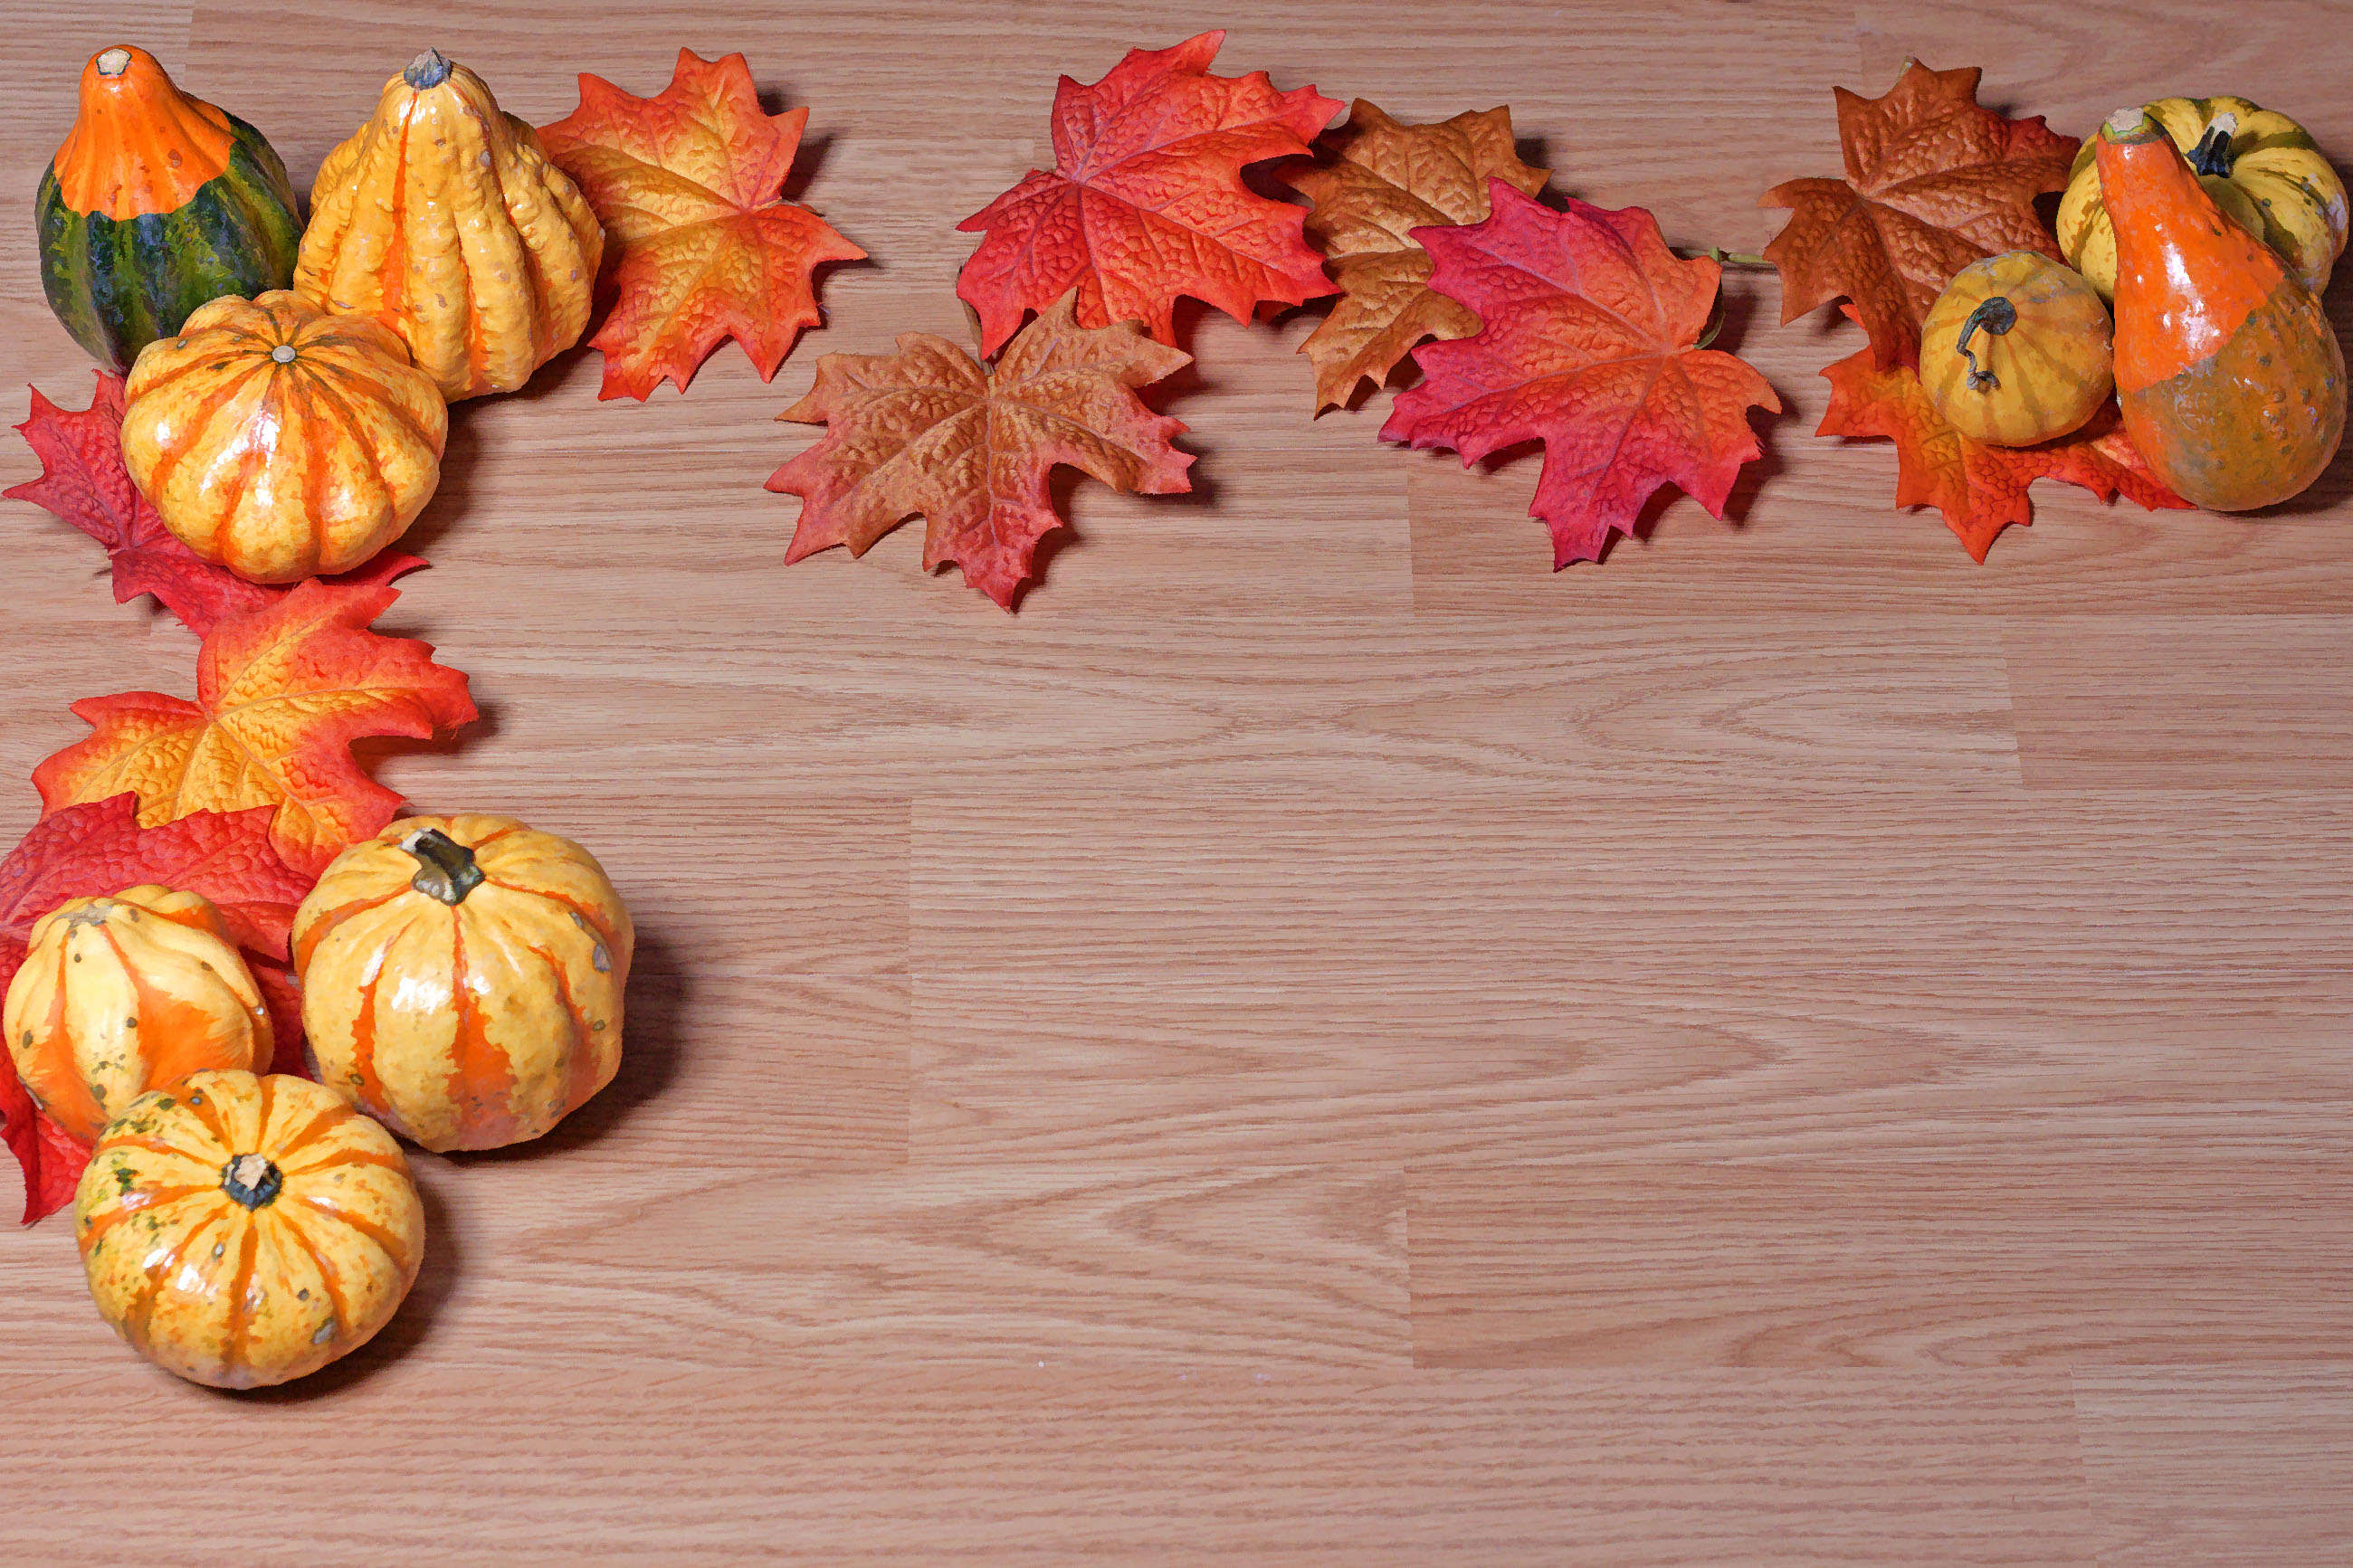 Gourds and Leaves, Space, October, Orange, Red, HQ Photo